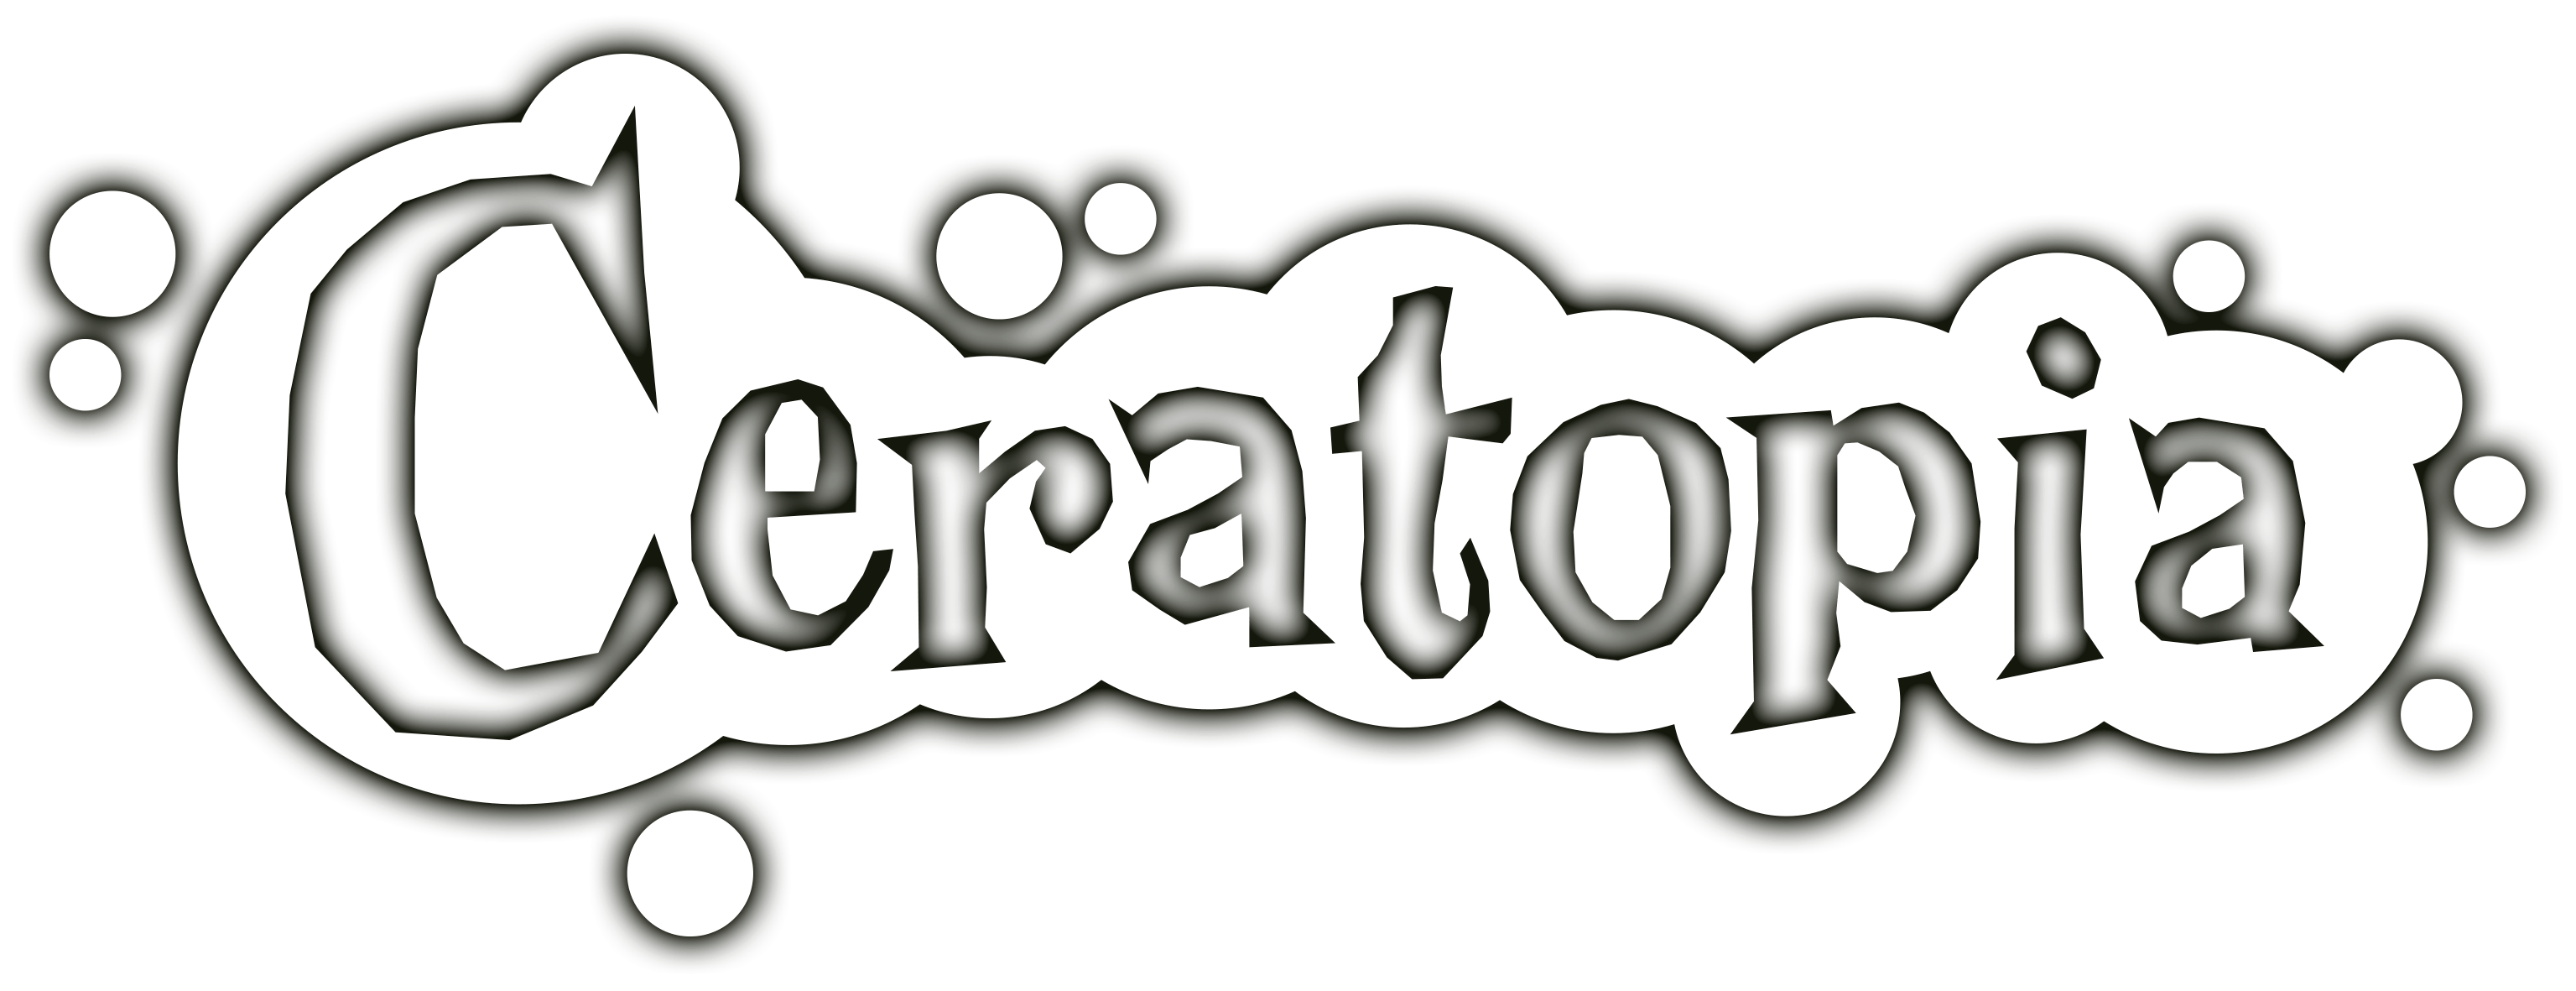 Ceratopia logo in white with shadow